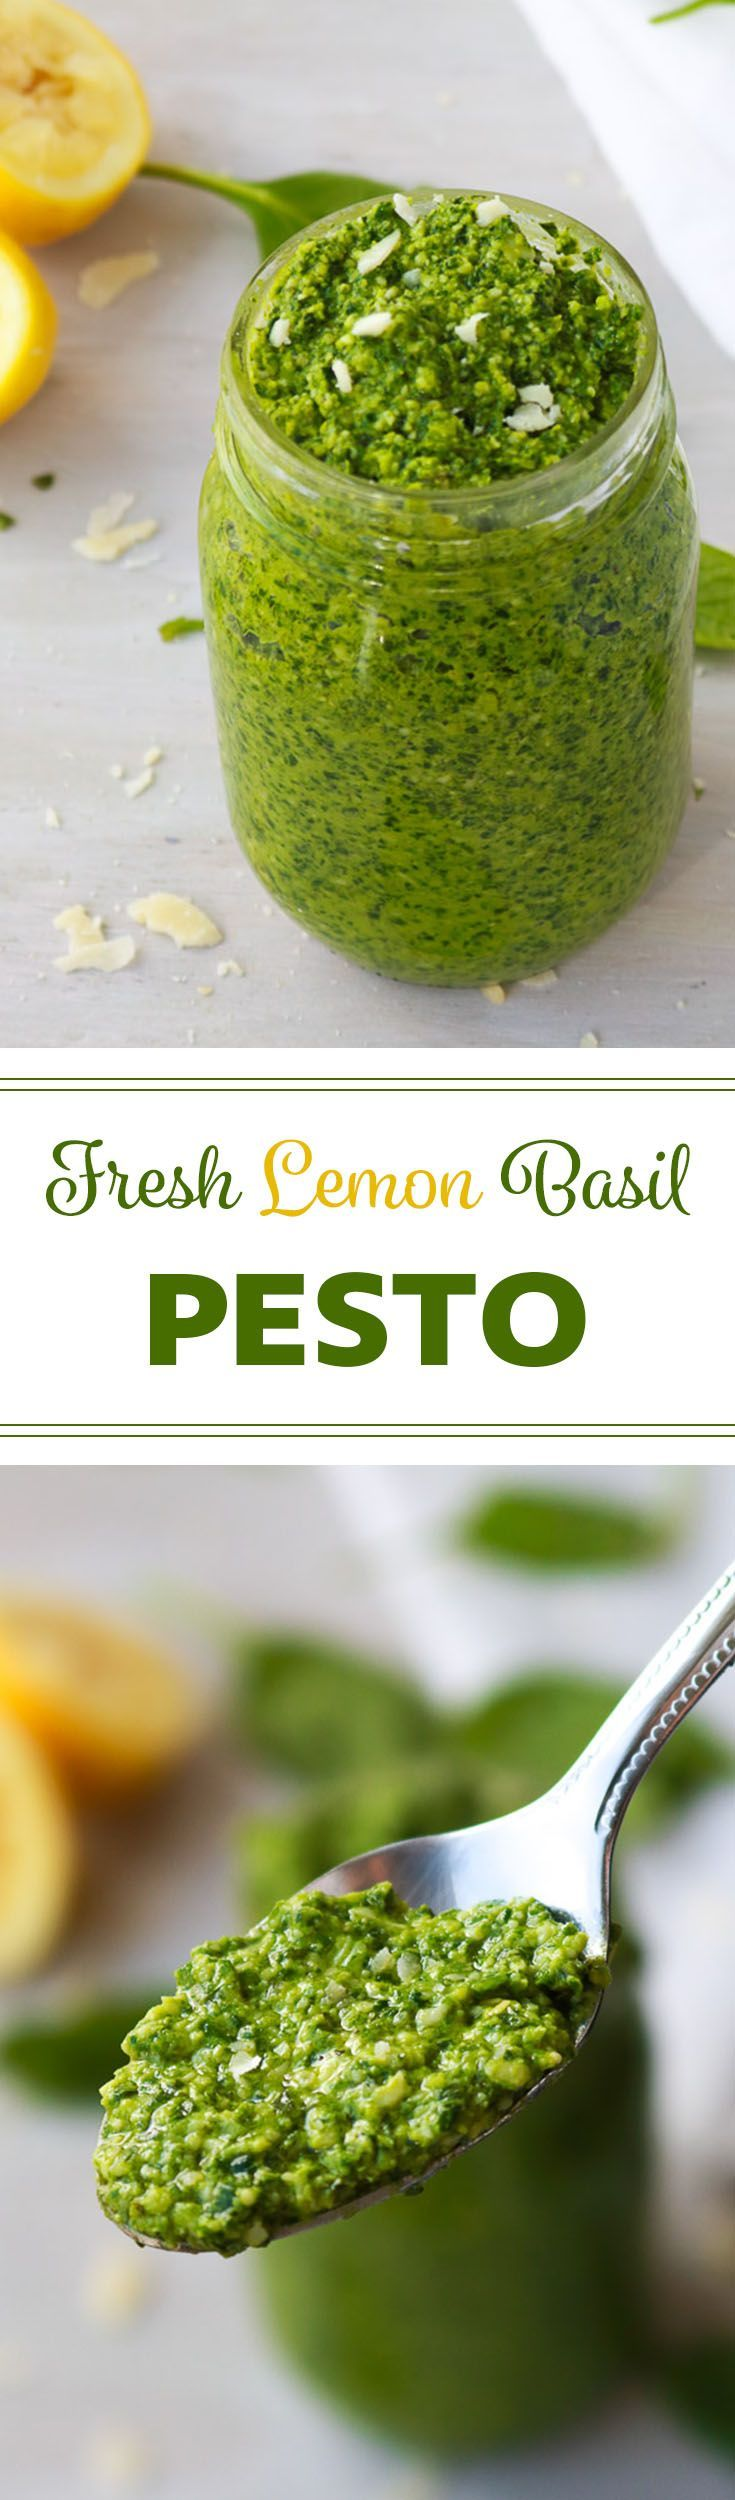 Fresh Lemon Basil Pesto | It just takes a few minutes to make yourself this fresh pesto bursting with outrageously delicious flavour.